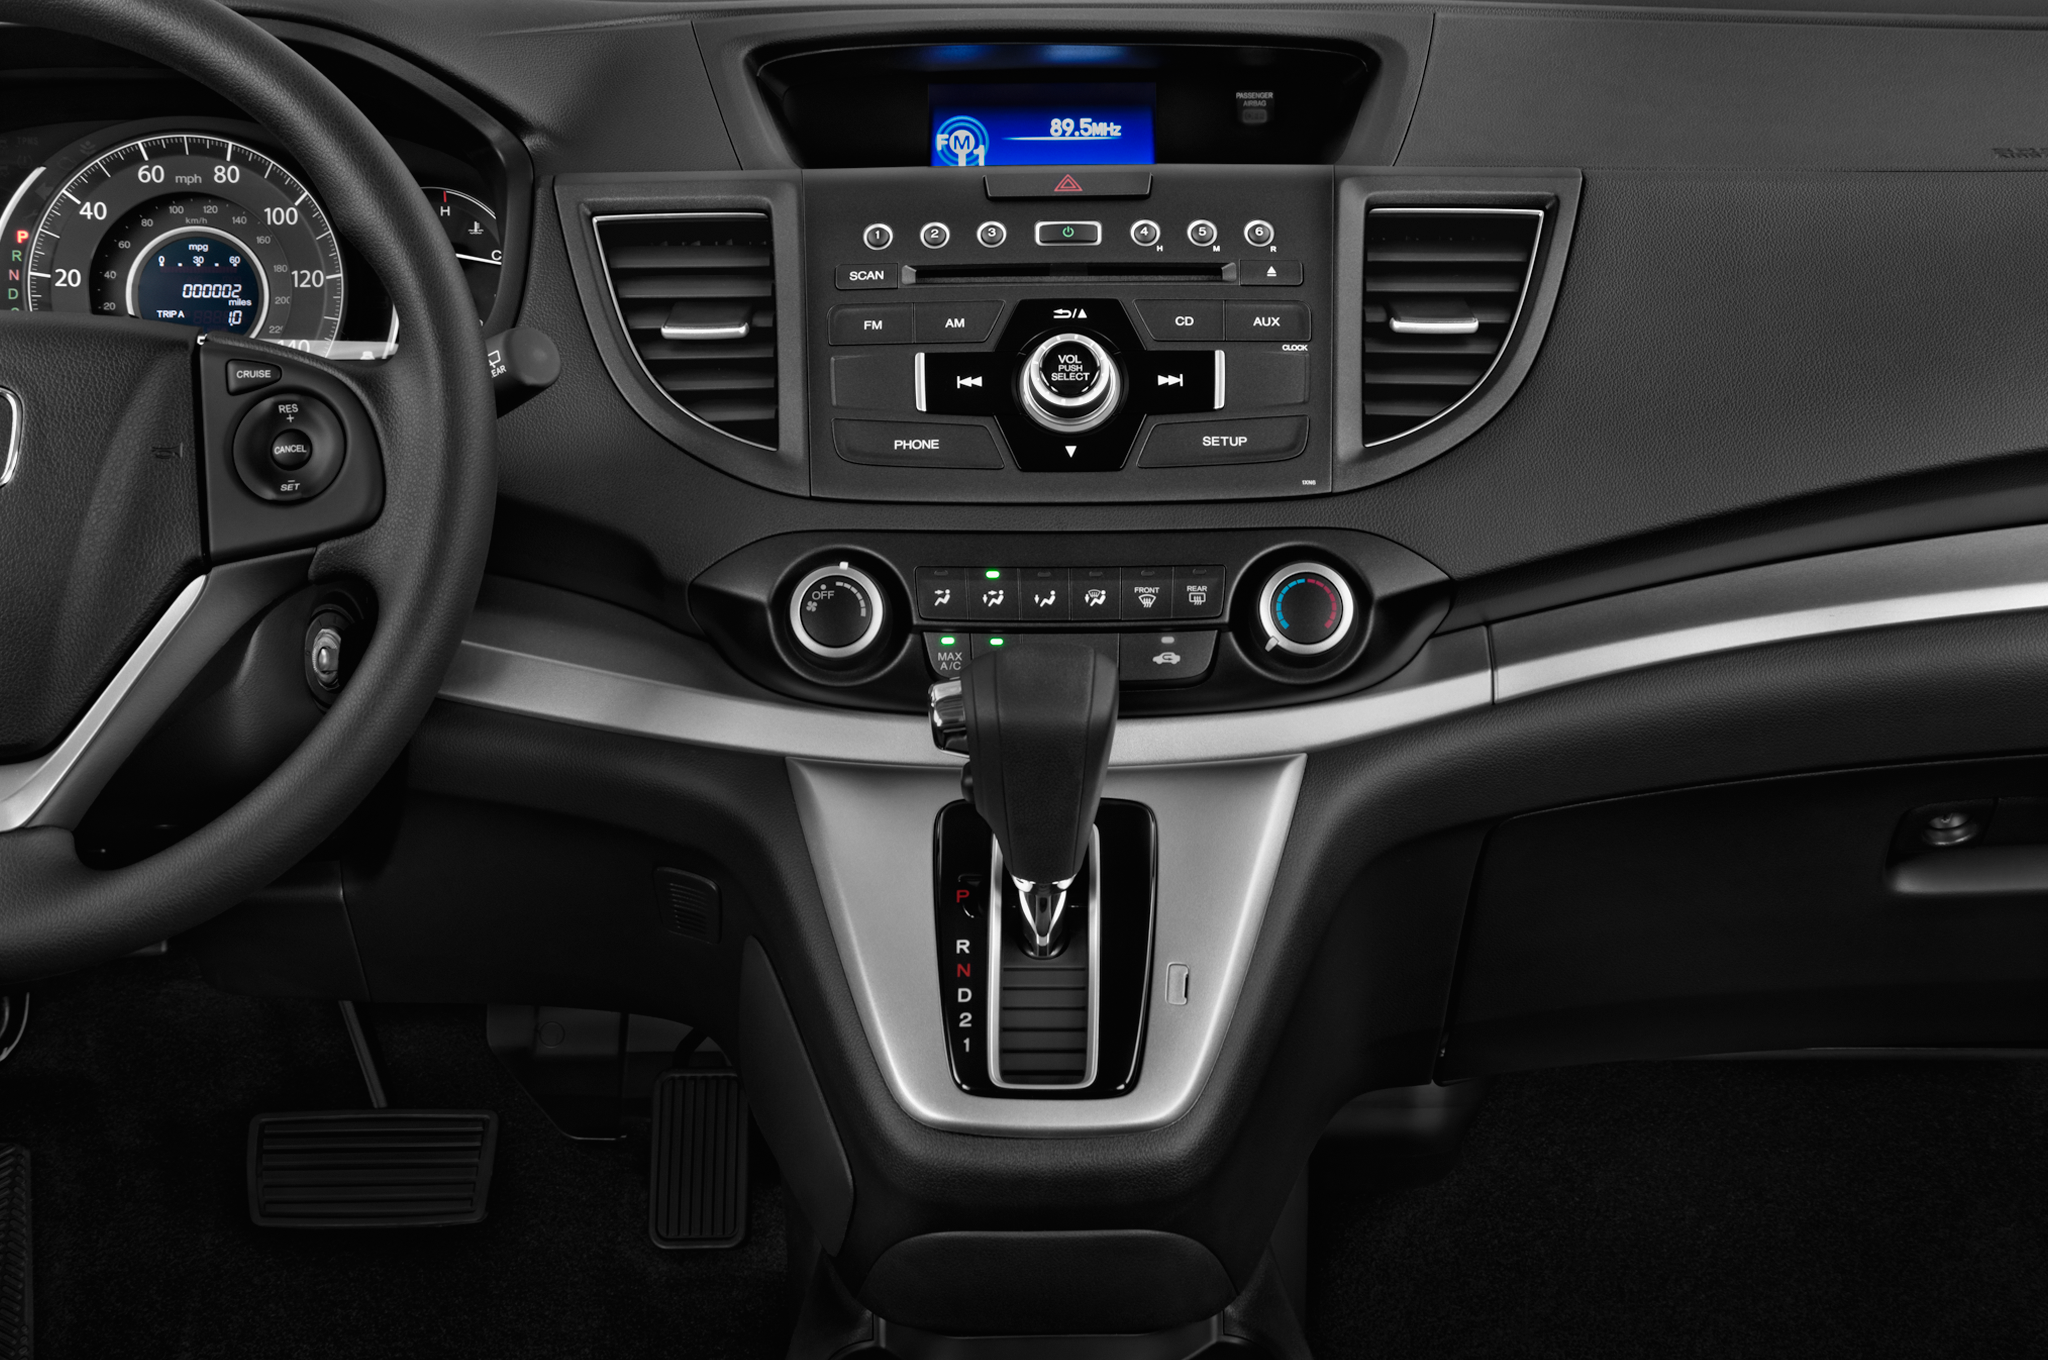 2012-honda-crv-ex-auto-2wd-suv-instrument-panel Take A Look About Honda Cr 100